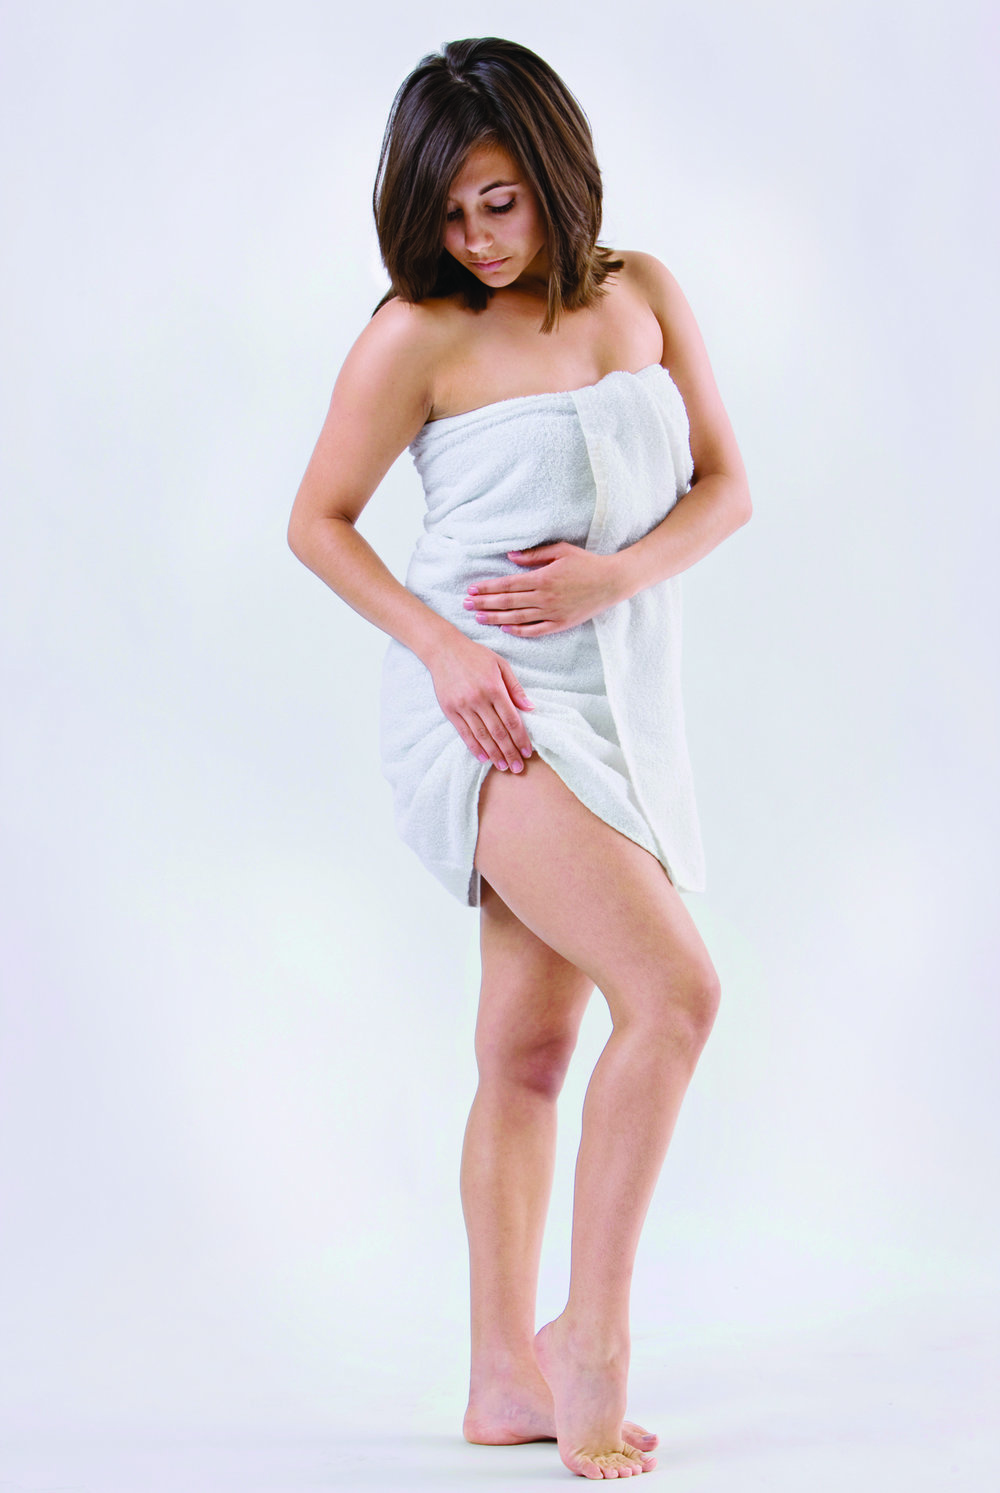 Cellulite is not merely a symptom of being overweight or obese. Even lean people can get cellulite.